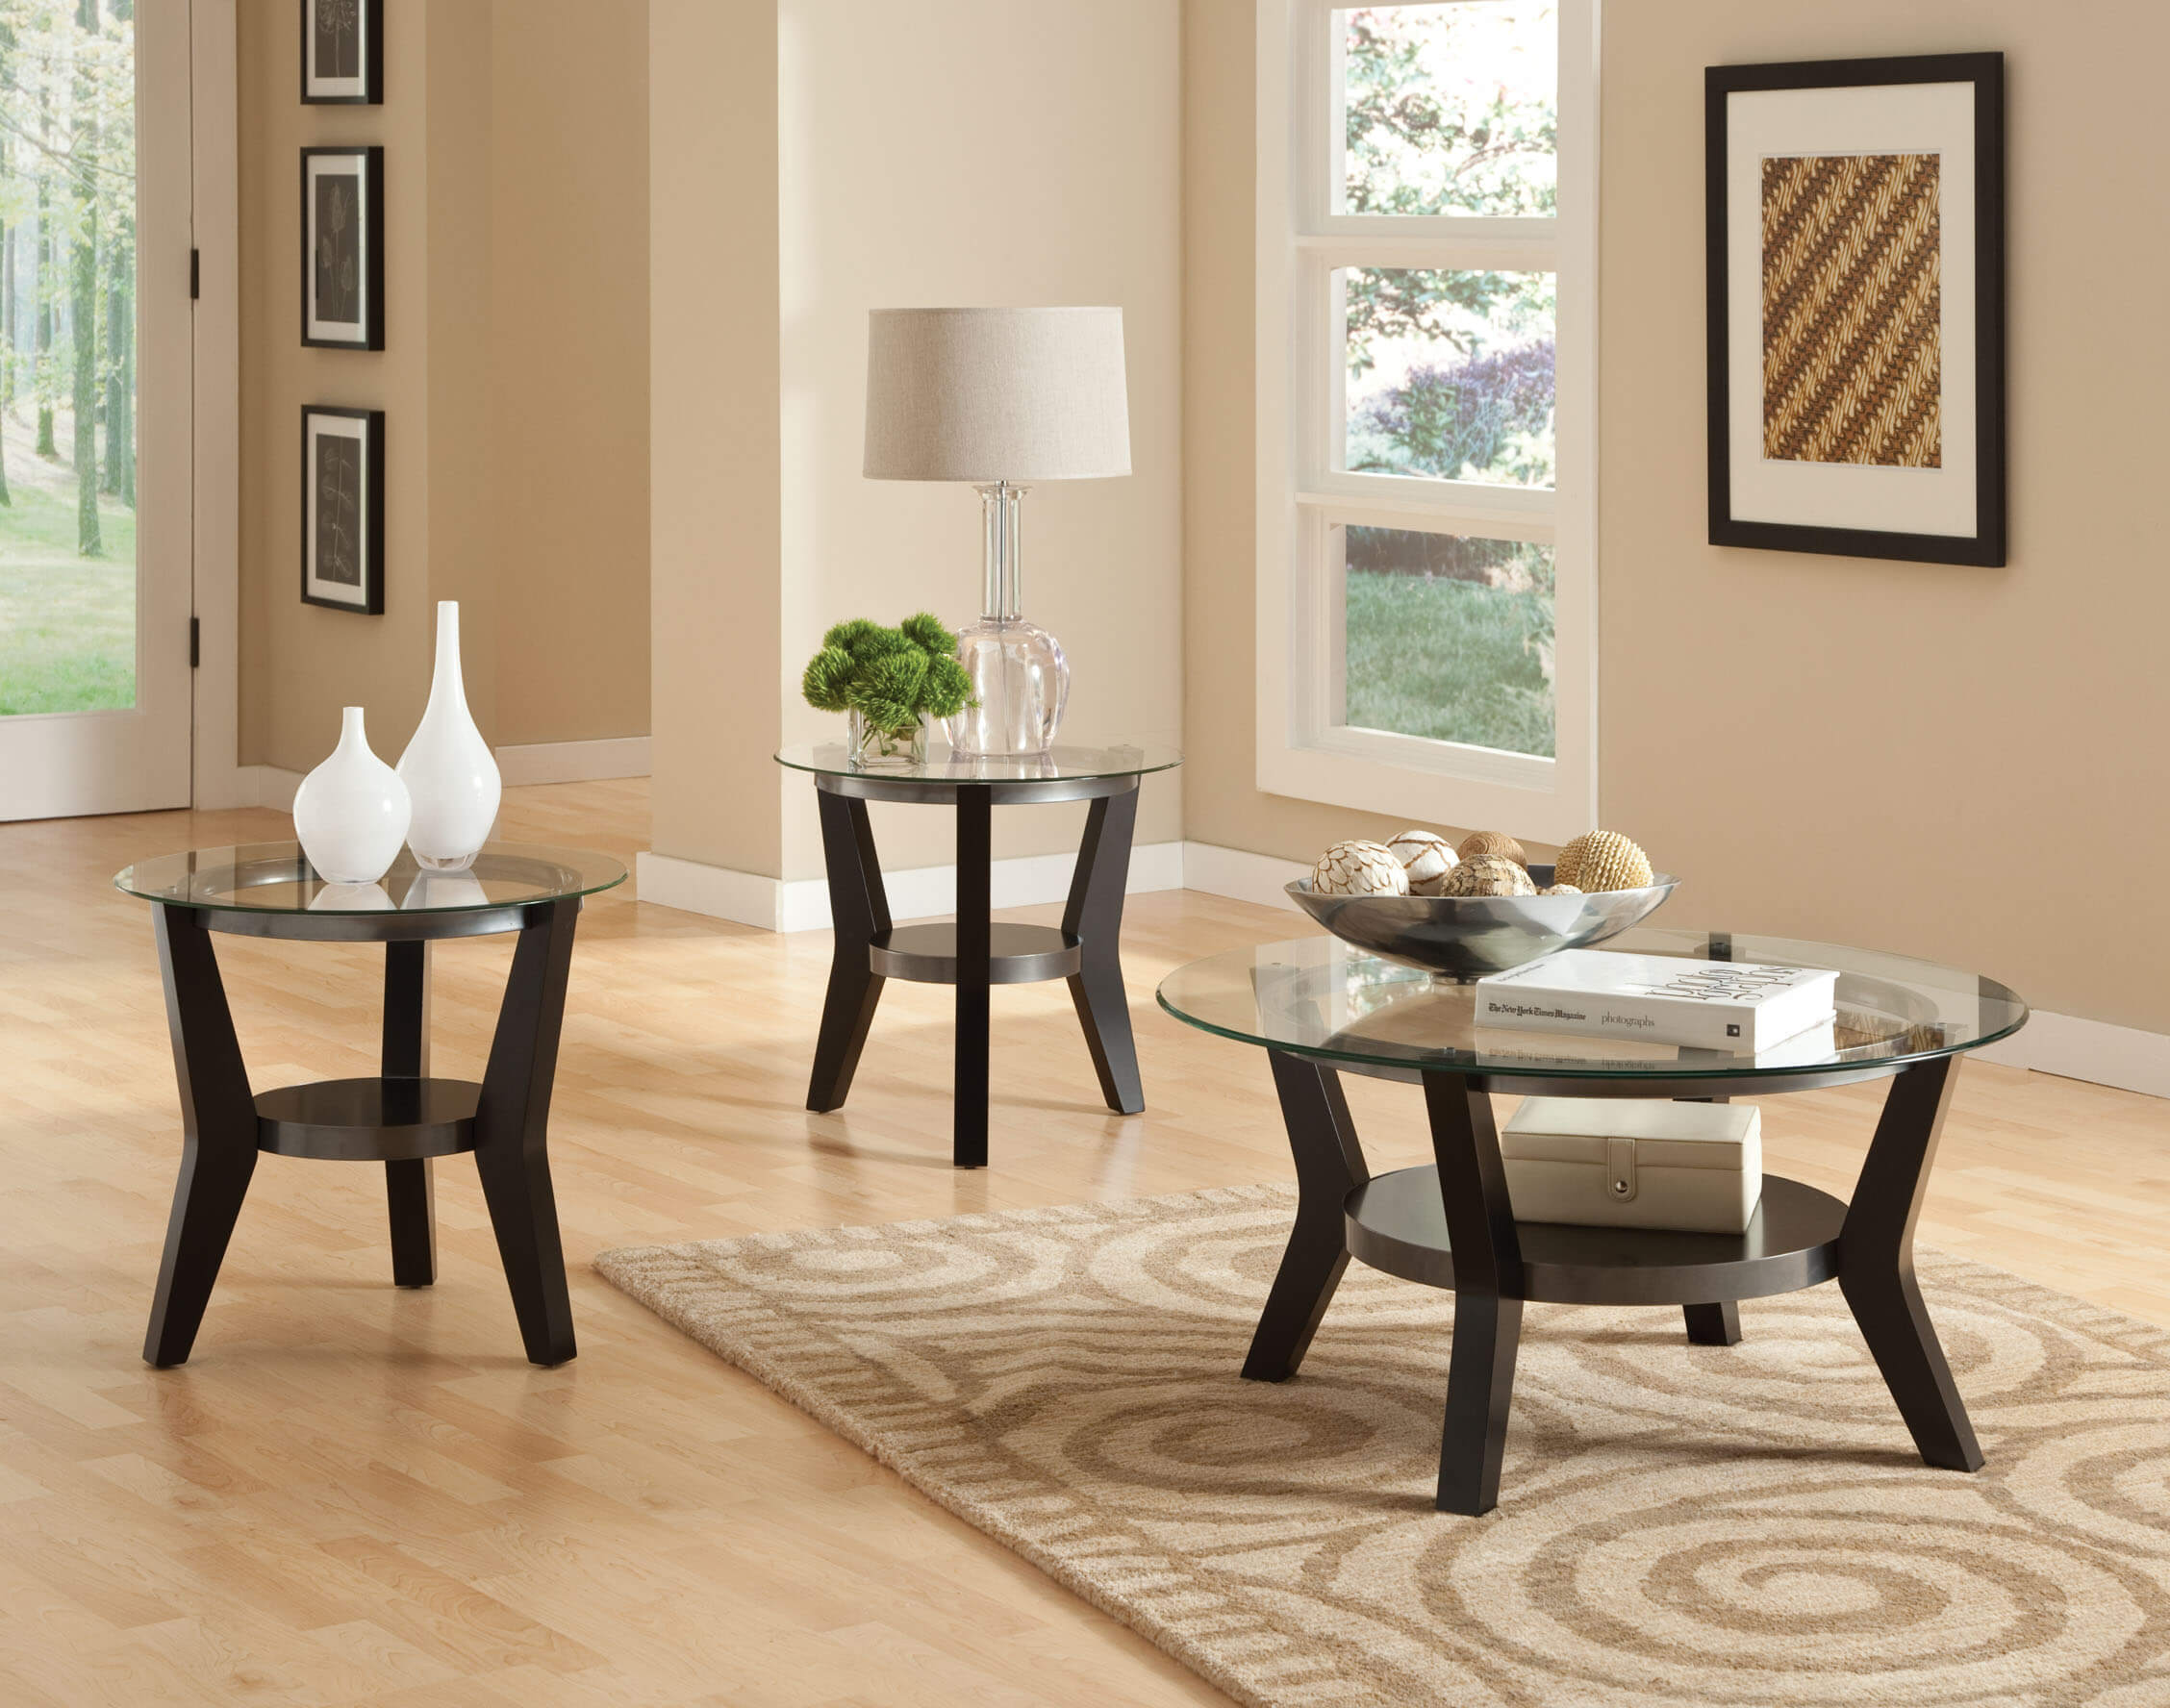 Orbit Black Glass Round Coffee and End Table Set